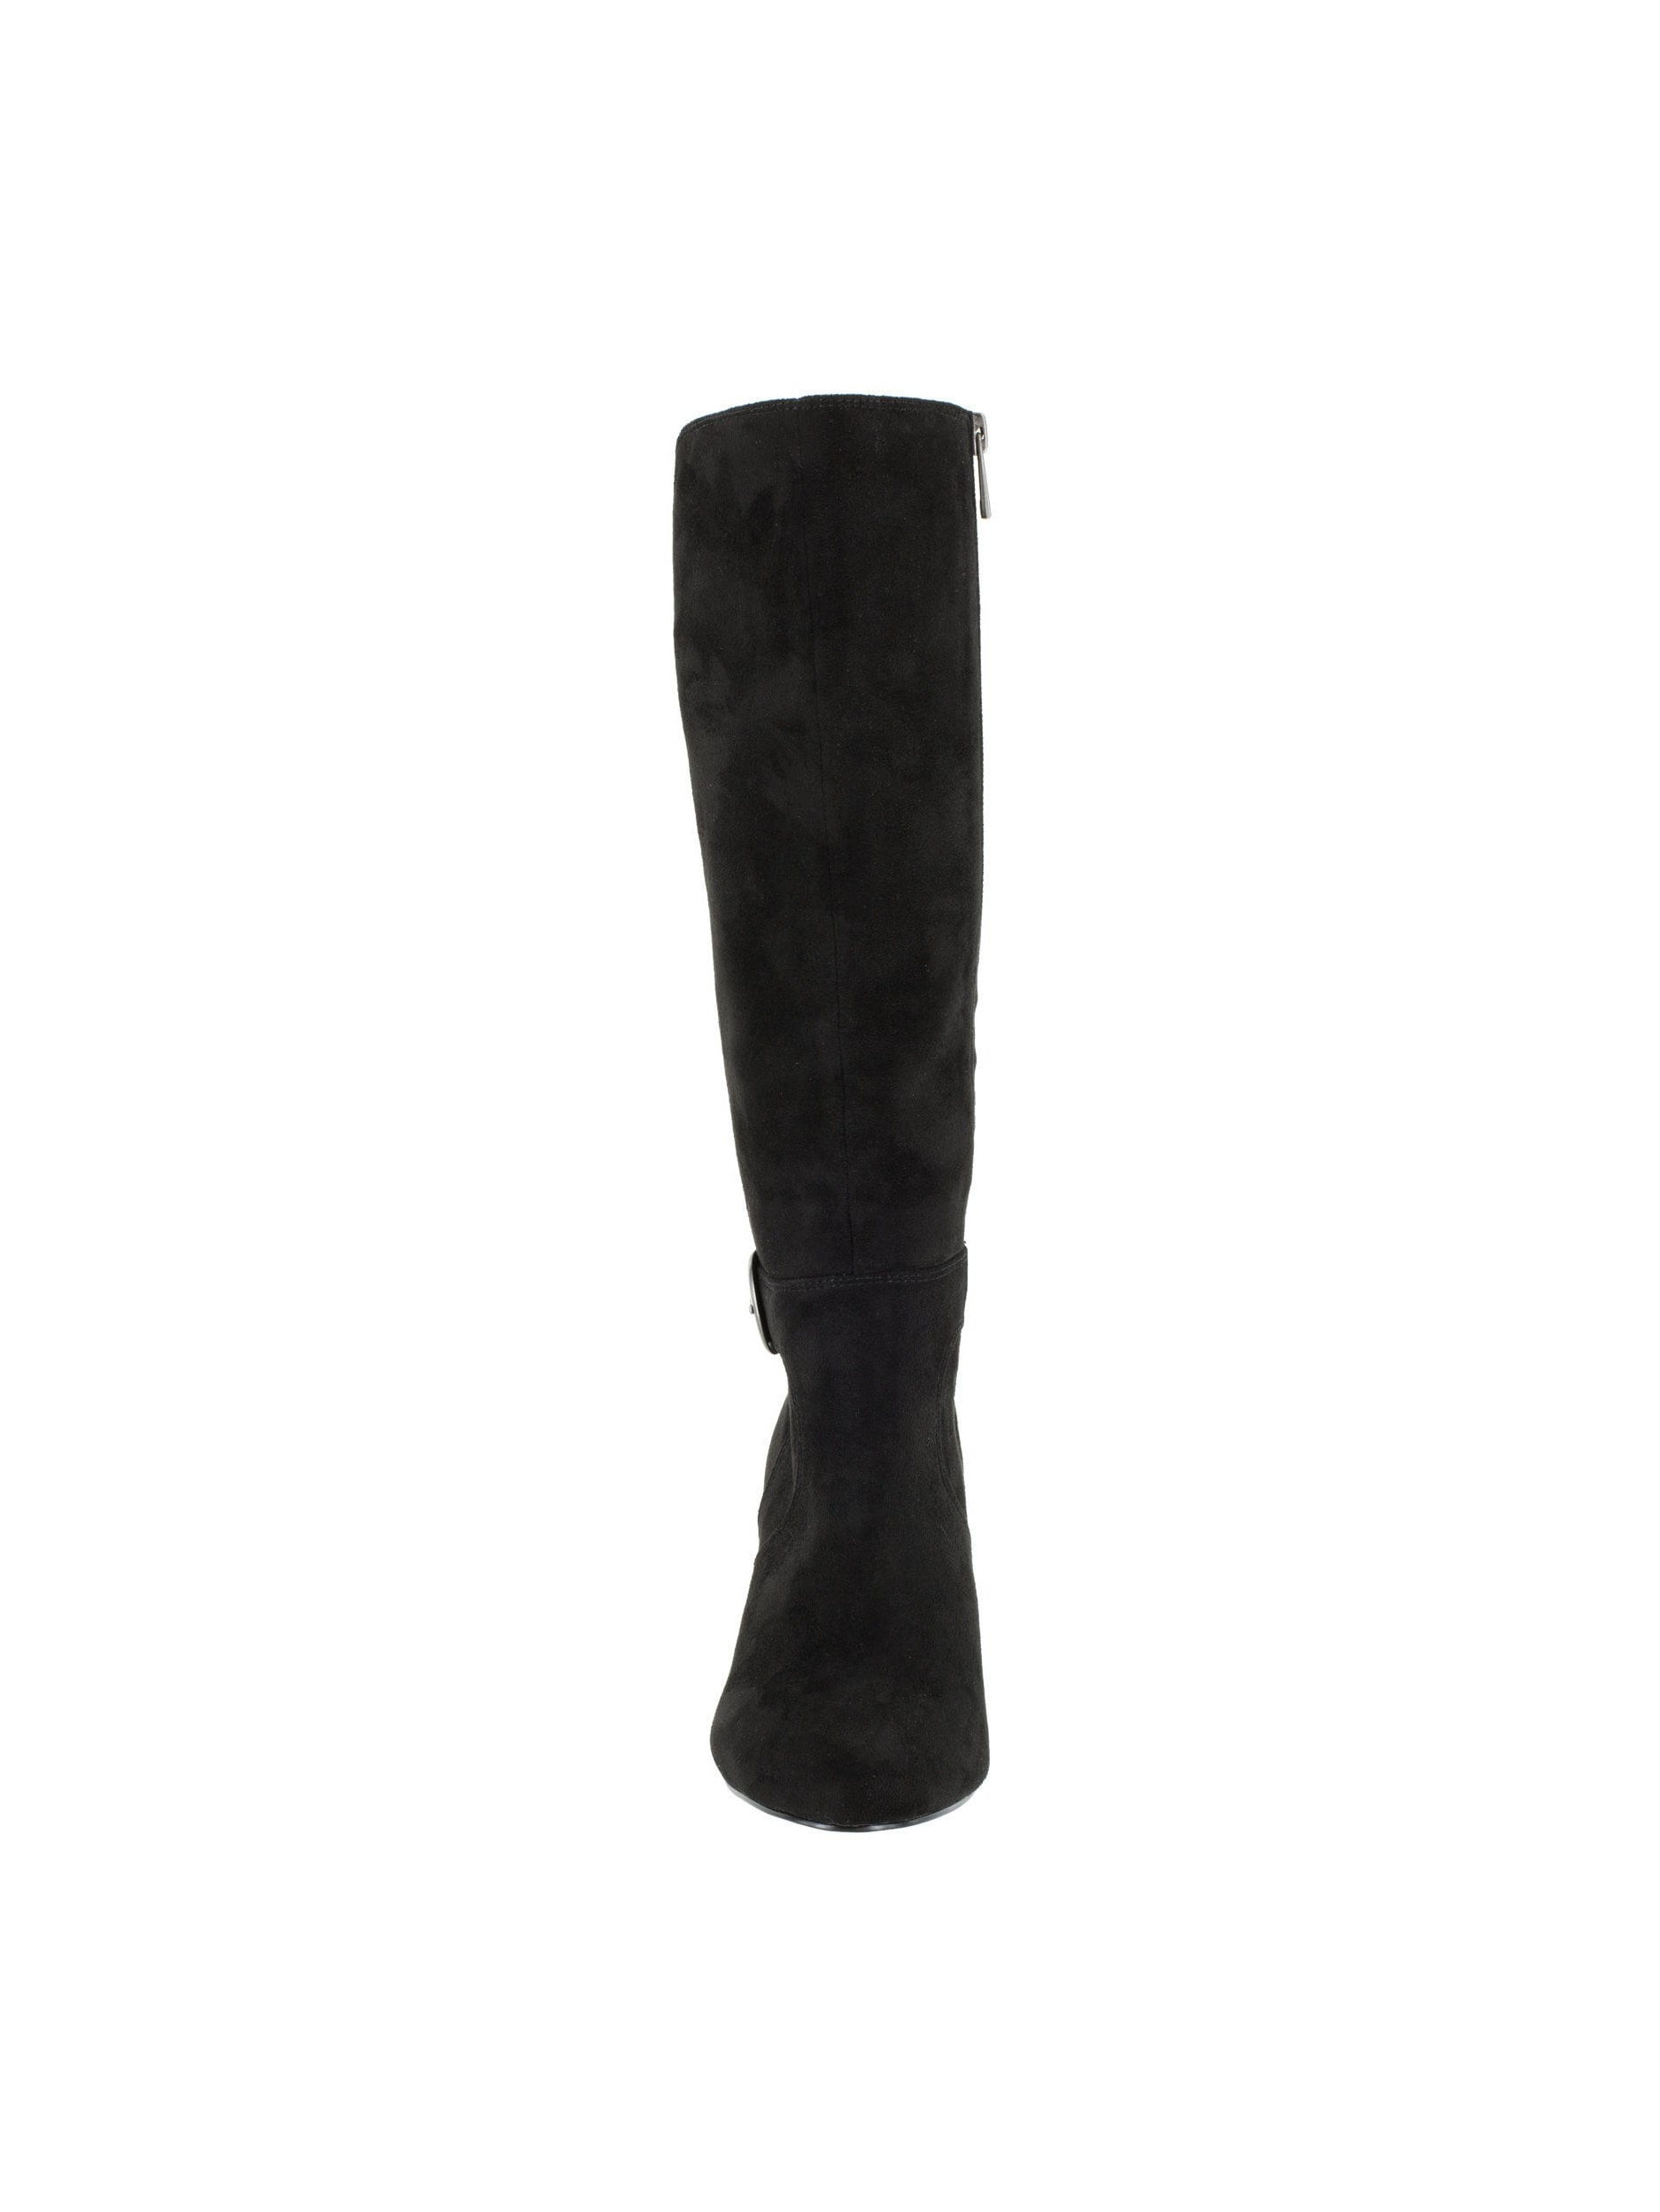 Bella Vita Women's Toni II Black Suede Tall Boots by Overstock